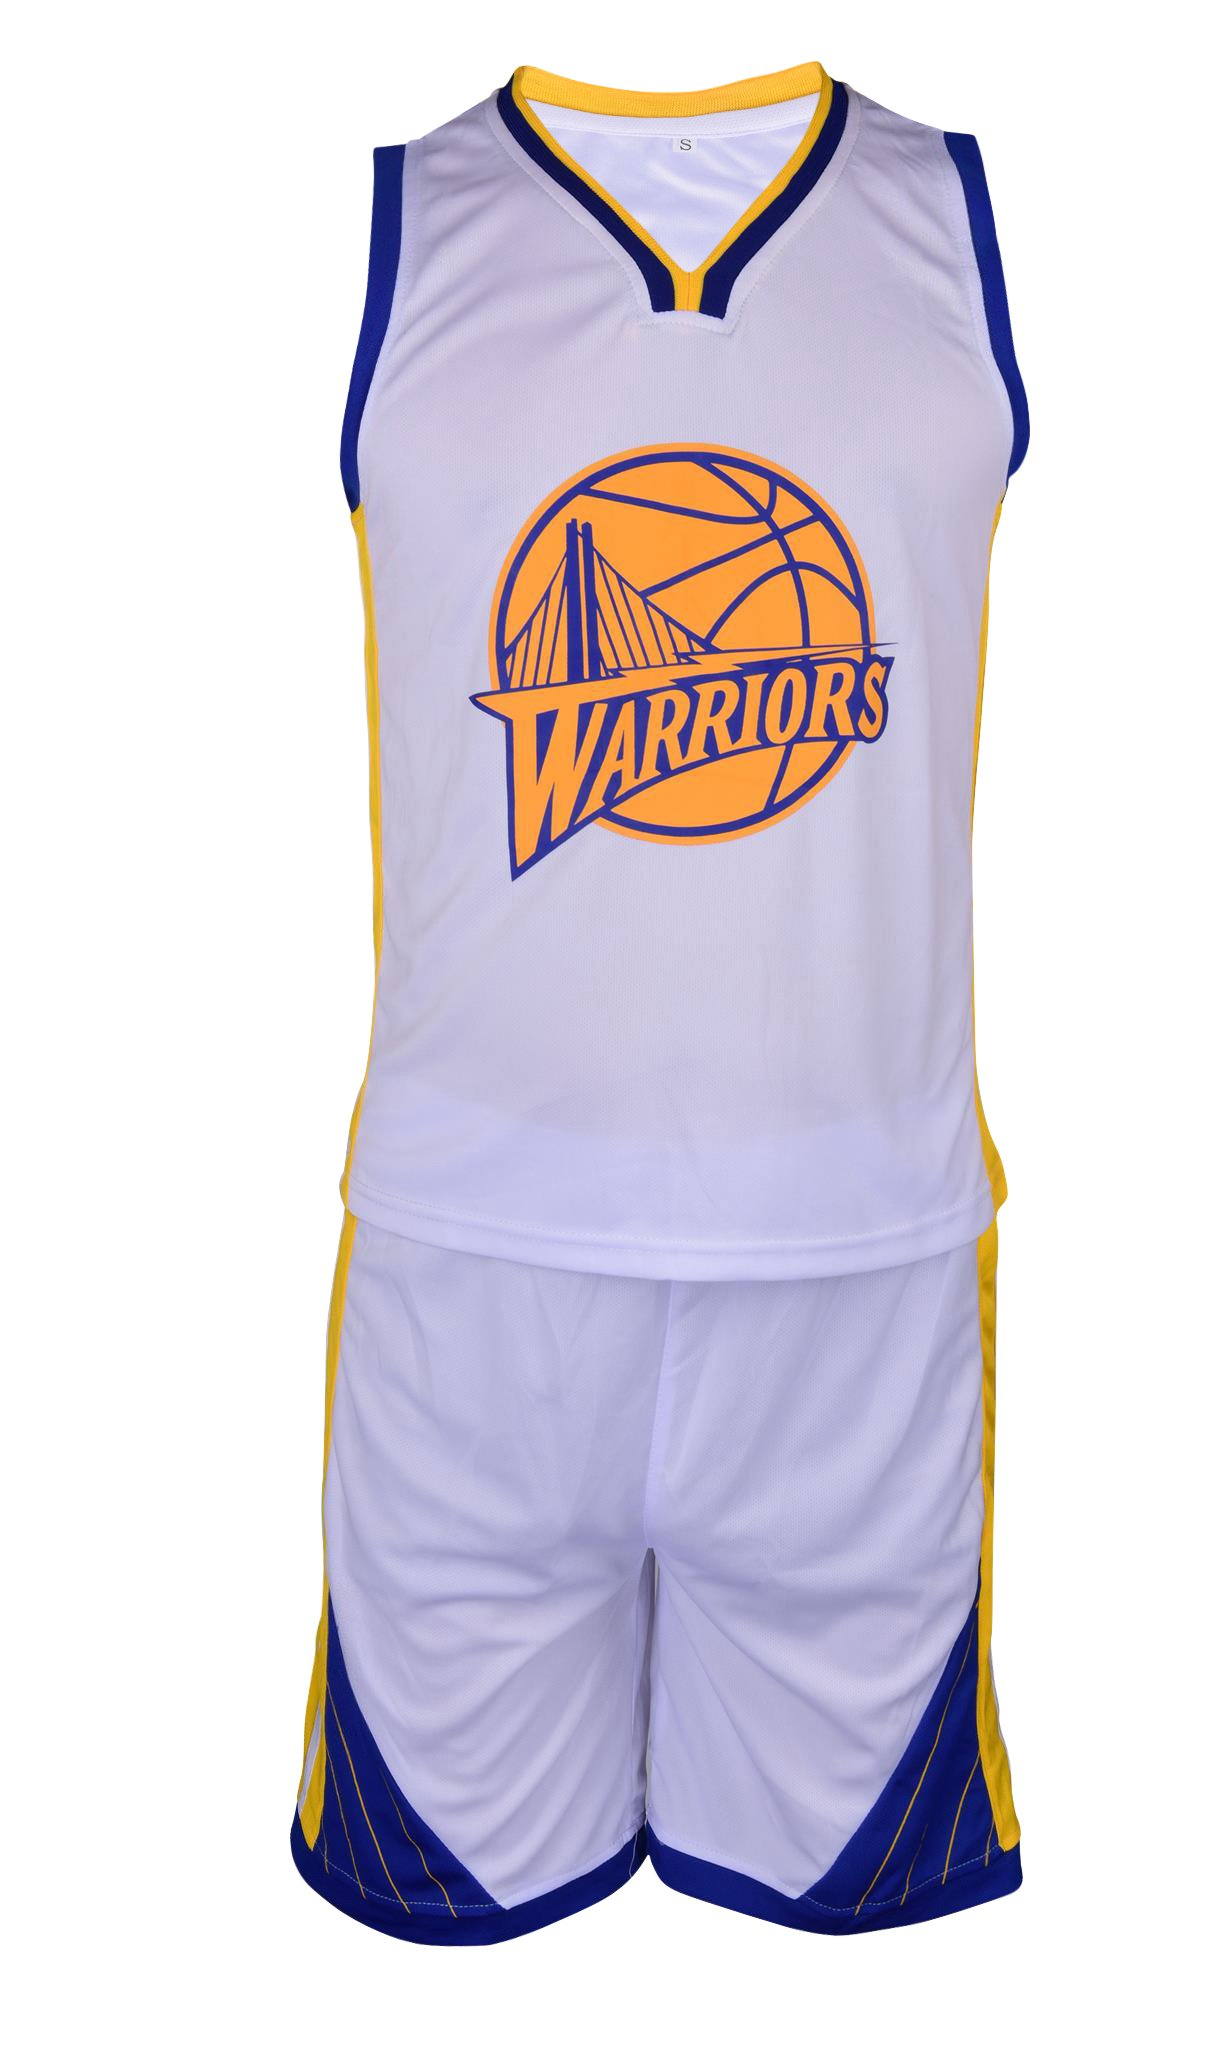 designer fashion dac74 9009e shop stephen curry jersey set dadaa a75db